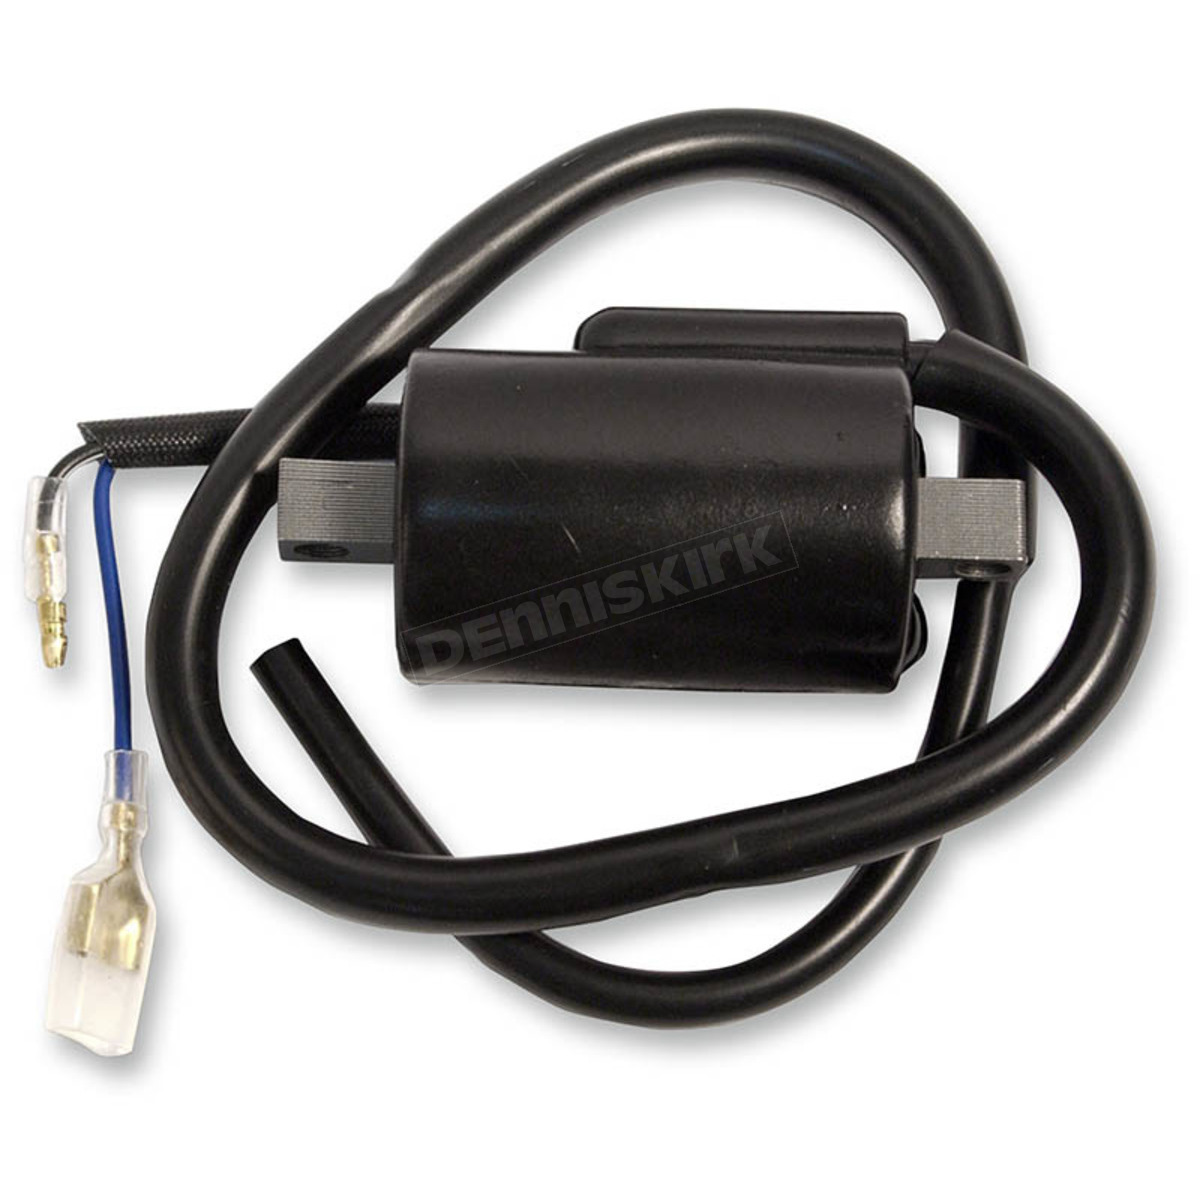 oep2009559_47bbd30b2b0d34b15f642e59eaa6be13932cee9e emgo honda twin style ignition coil 24 37812 cruiser motorcycle emgo coil wire diagram at webbmarketing.co